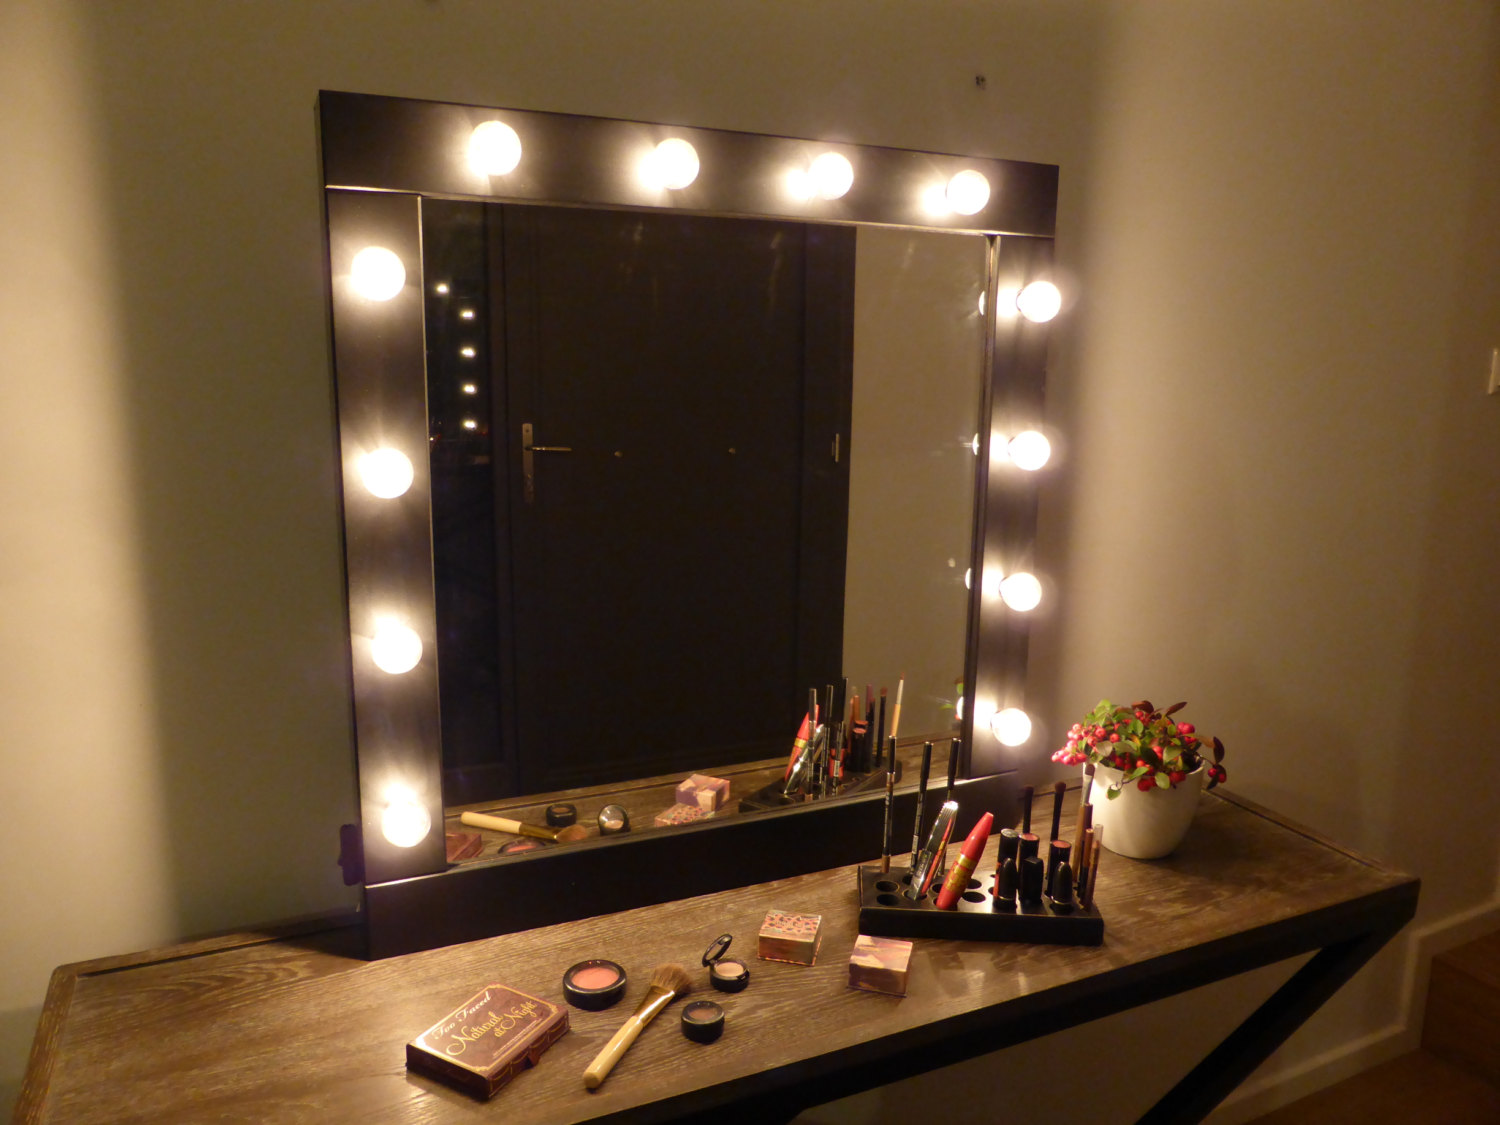 Light Up Vanity Wall Mirror Cheaper Than Retail Price Buy Clothing Accessories And Lifestyle Products For Women Men